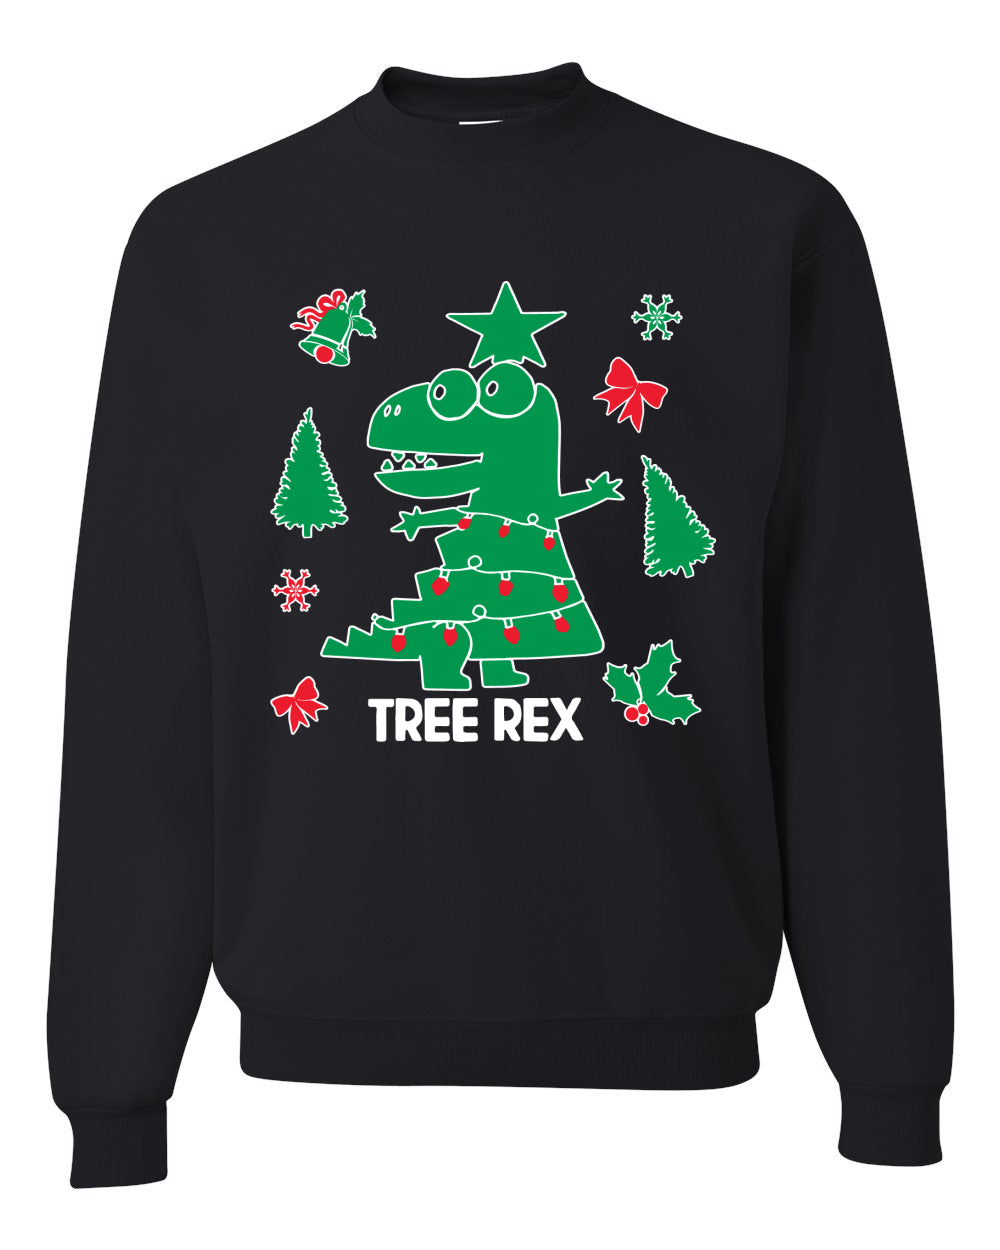 Christmas Trex Tree Rex Ugly Christmas Sweater Christmas Unisex Crewneck Graphic Sweatshirt